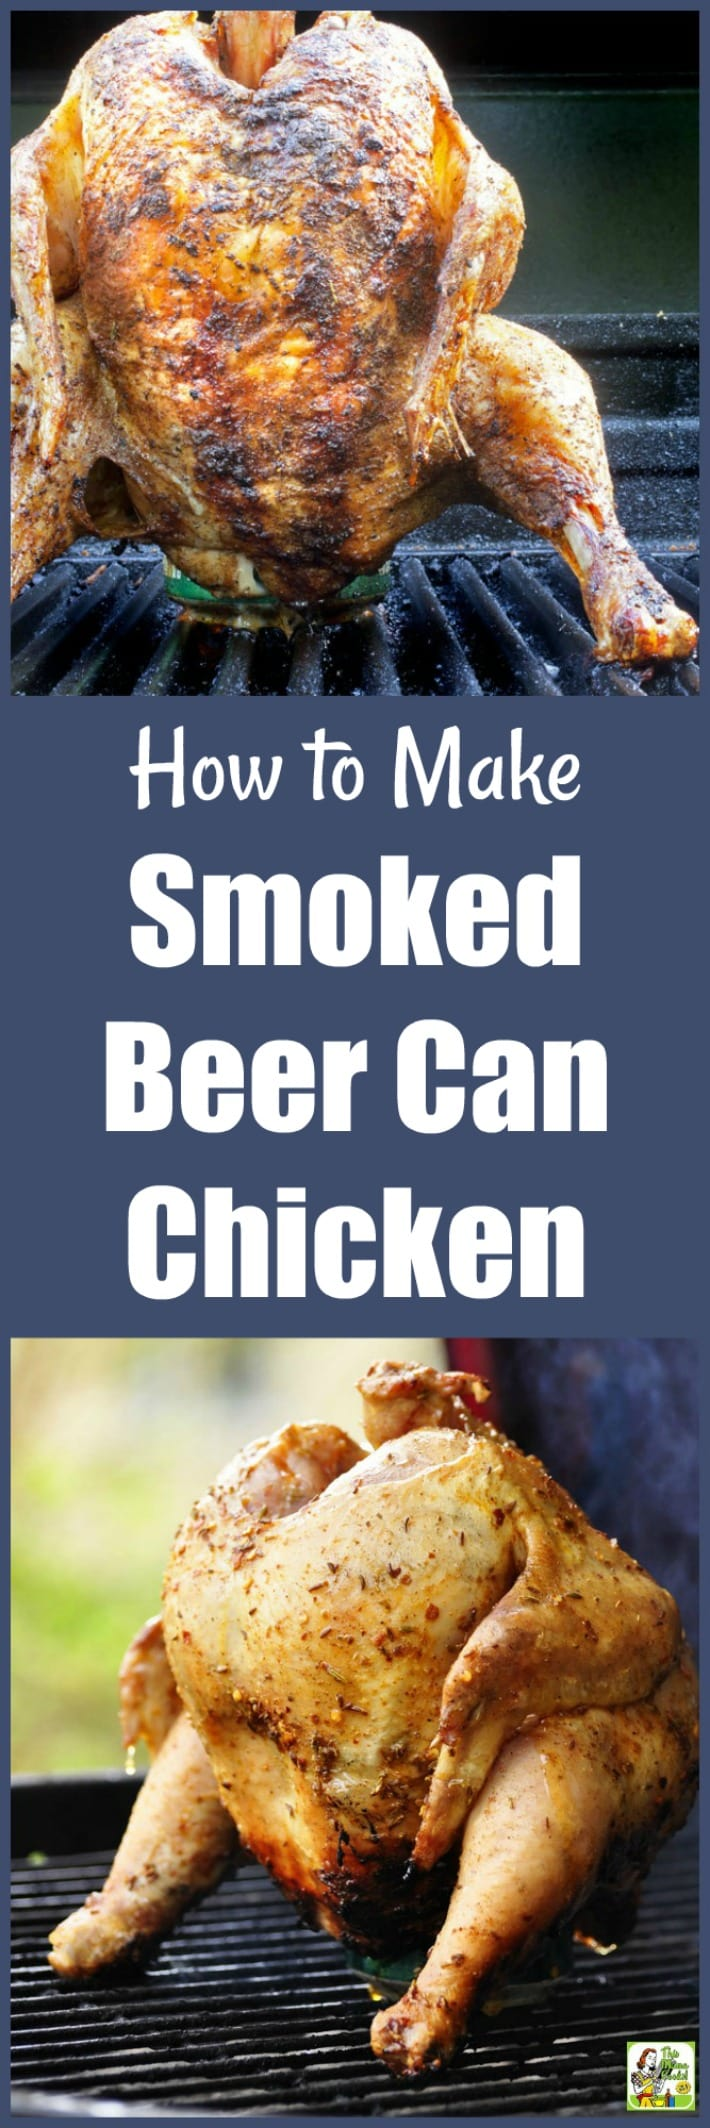 Get that smoker going because making smoked beer can chicken is easier than you think! Just use a can of beer (or juice),  bottled marinade, and some store-bought barbeque rub. Tastes great and worth the effort! #chicken #recipes #easy #recipeoftheday #glutenfree #easyrecipe #glutenfreerecipes #dinner #easydinner #dinnerrecipes #dinnerideas #chicken #chickenfoodrecipes #chickenrecipes #grill #grilling #grillrecipes #grillingrecipes